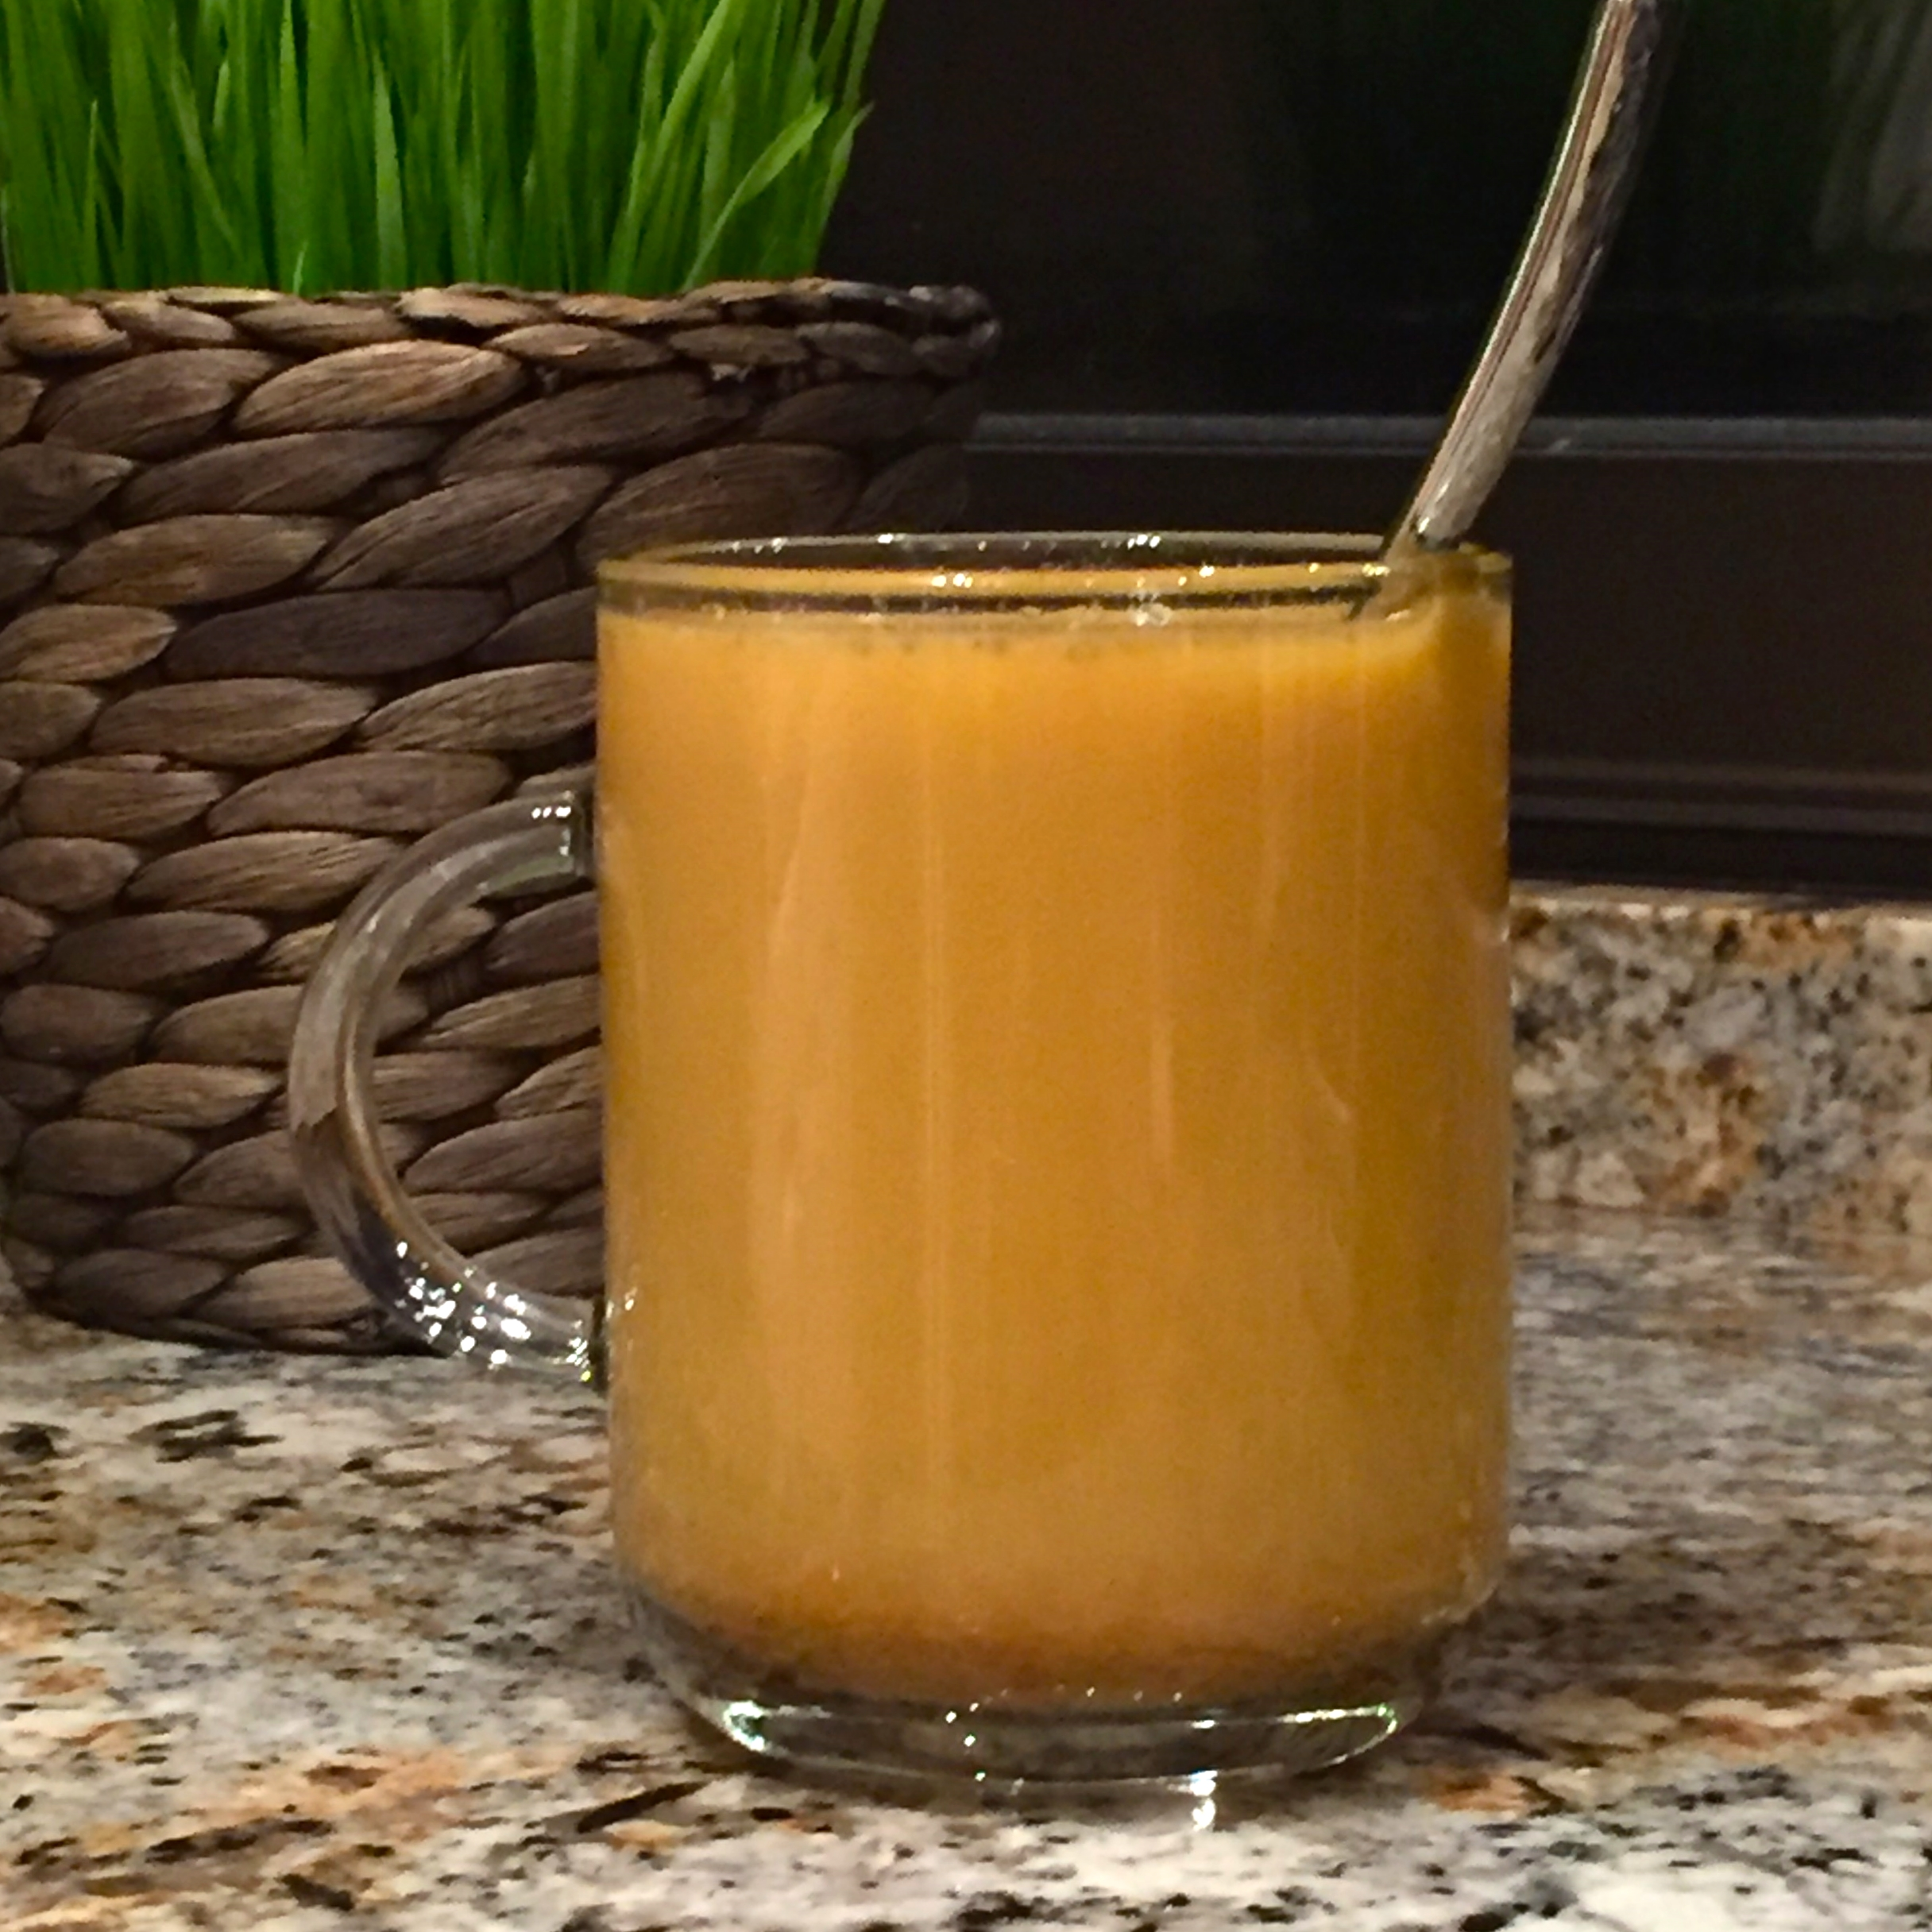 Yummy Turmeric Tea!